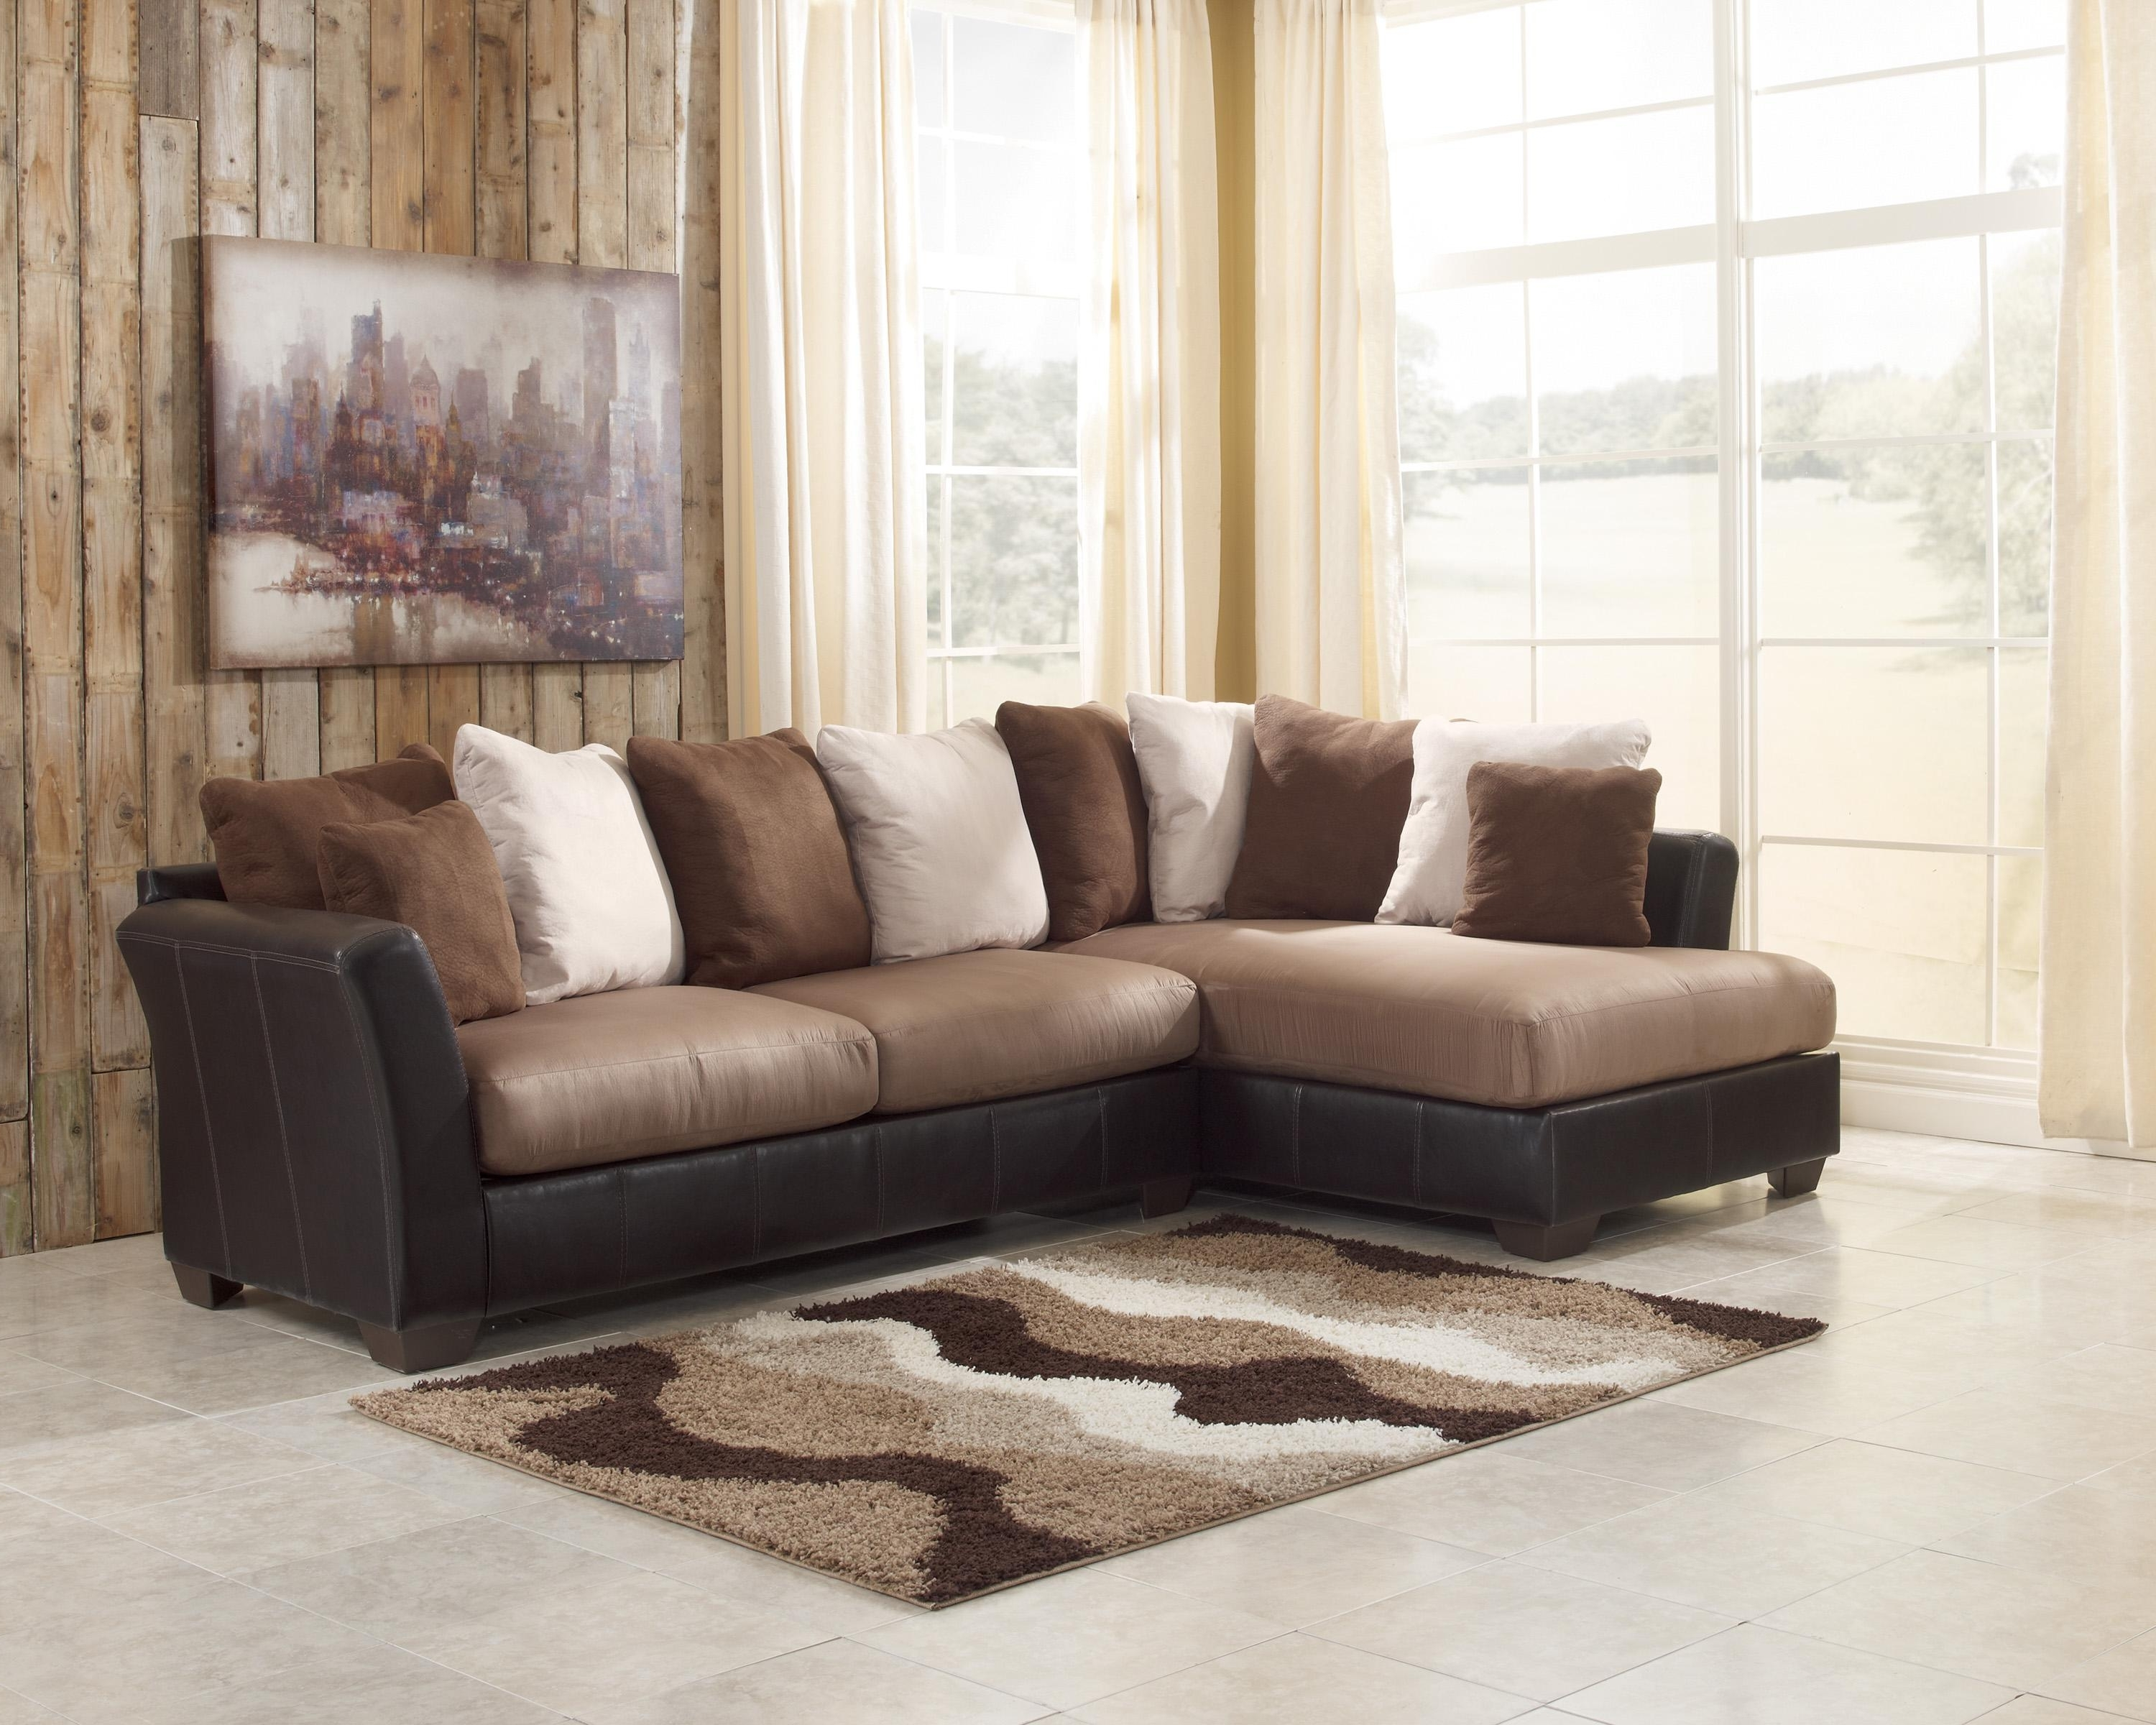 Trendy Sectional Sofas With 2 Chaises Regarding Cool Fancy 2 Piece Sectional Sofa With Chaise 61 For Your Home (View 19 of 20)